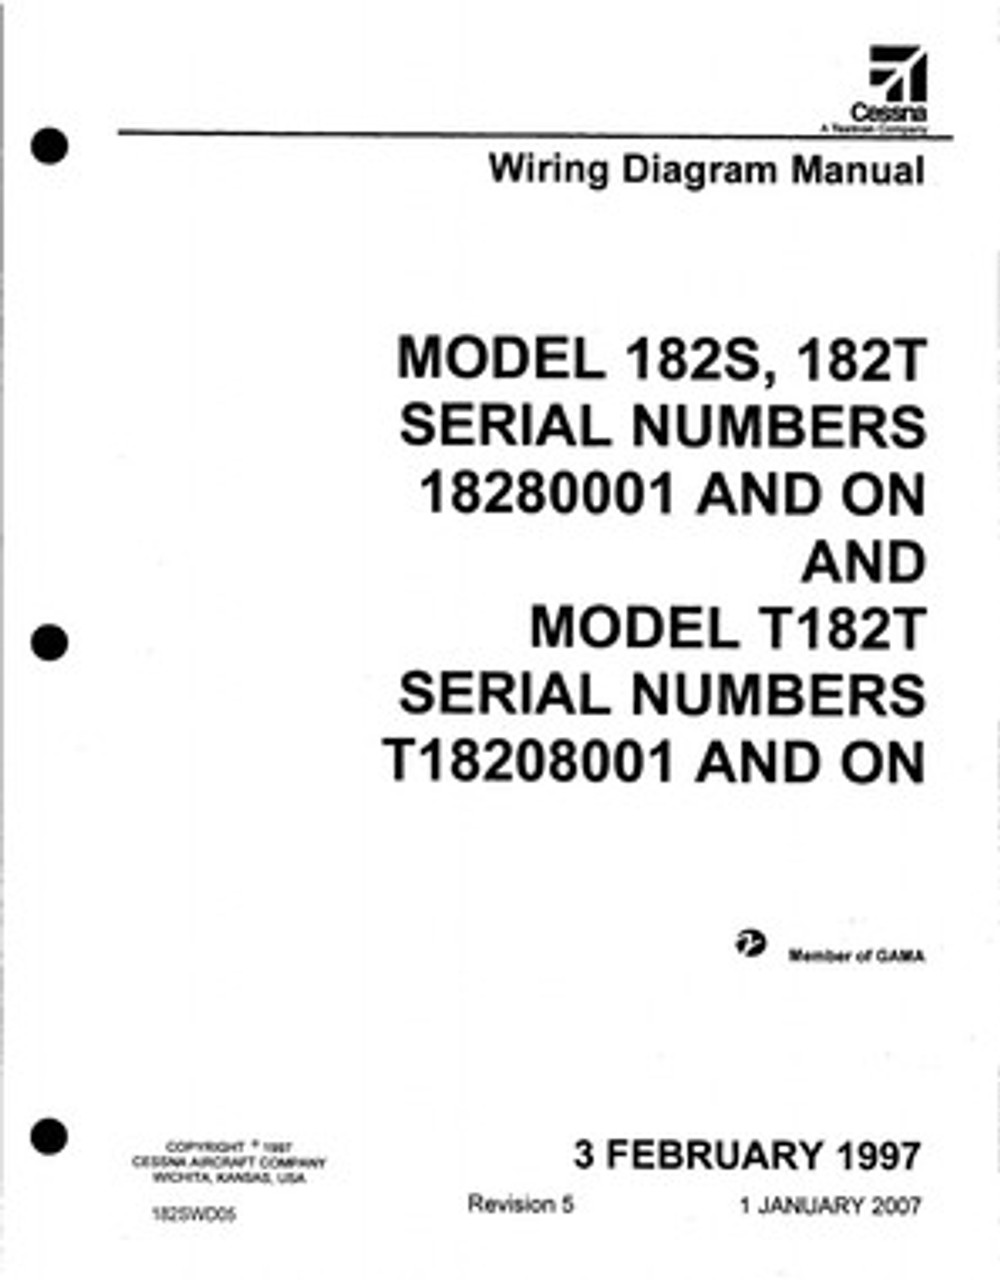 cessna 182 wiring diagram electrical manual 182s 182t. Black Bedroom Furniture Sets. Home Design Ideas